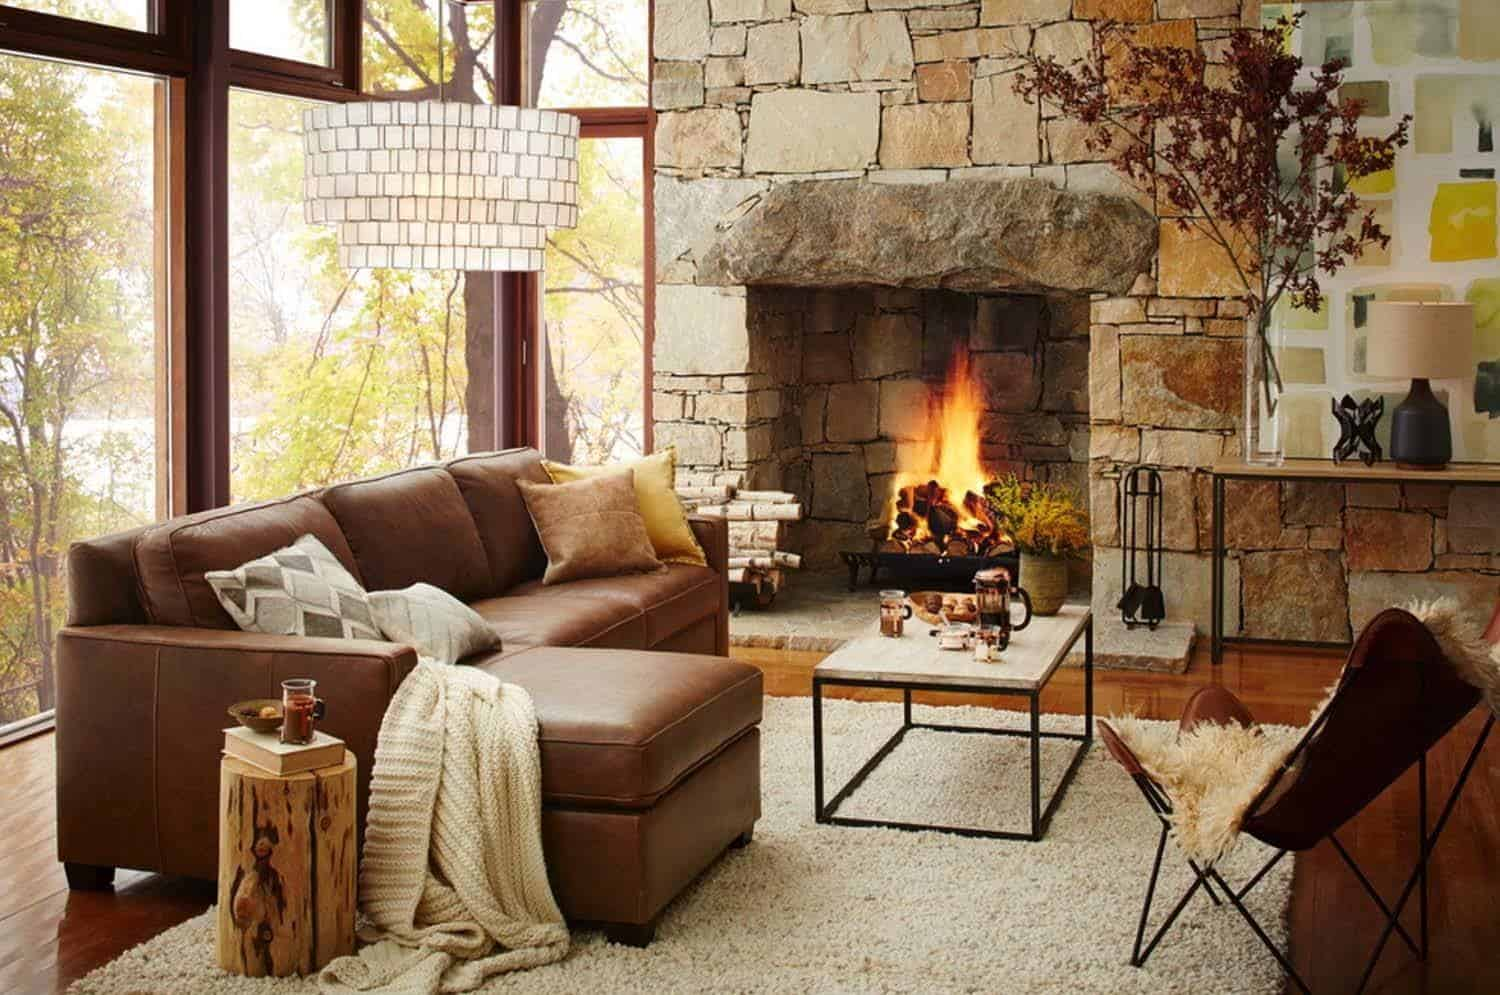 Cozy Fireplace Ideas-14-1 Kindesign